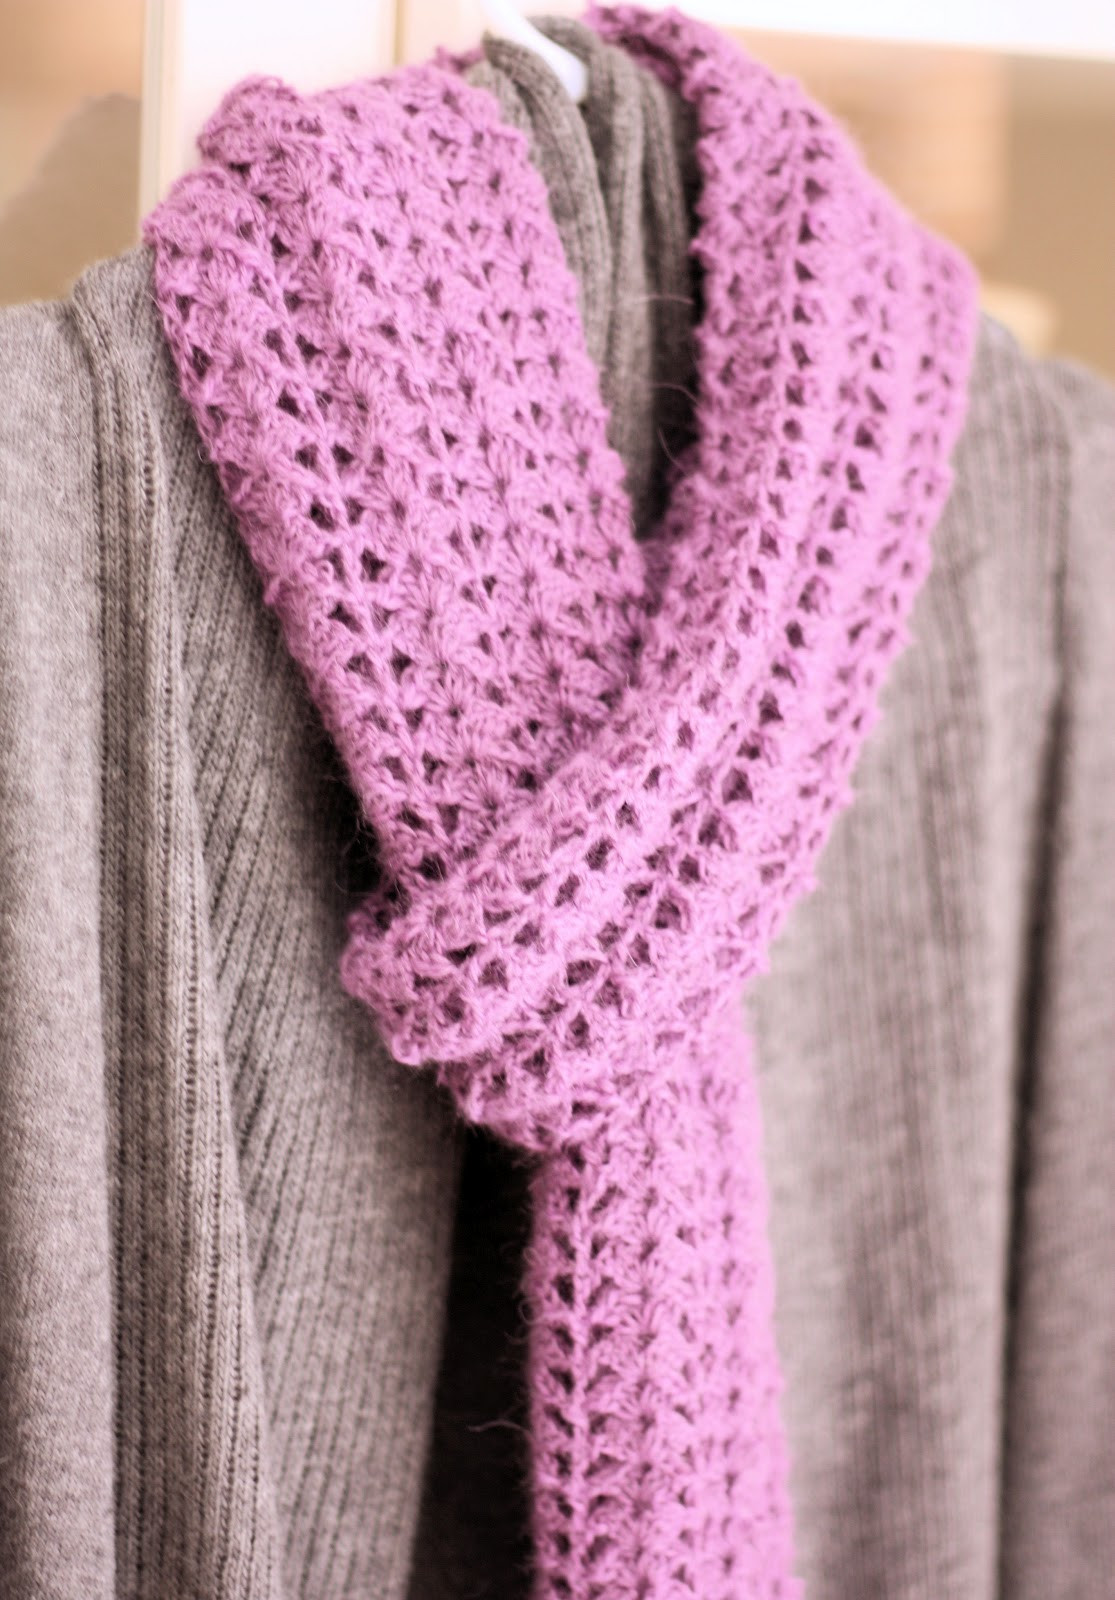 Crochet Scarves Patterns Unique Crocheted Scarf Free Pattern A Spoonful Of Sugar Of Adorable 49 Models Crochet Scarves Patterns